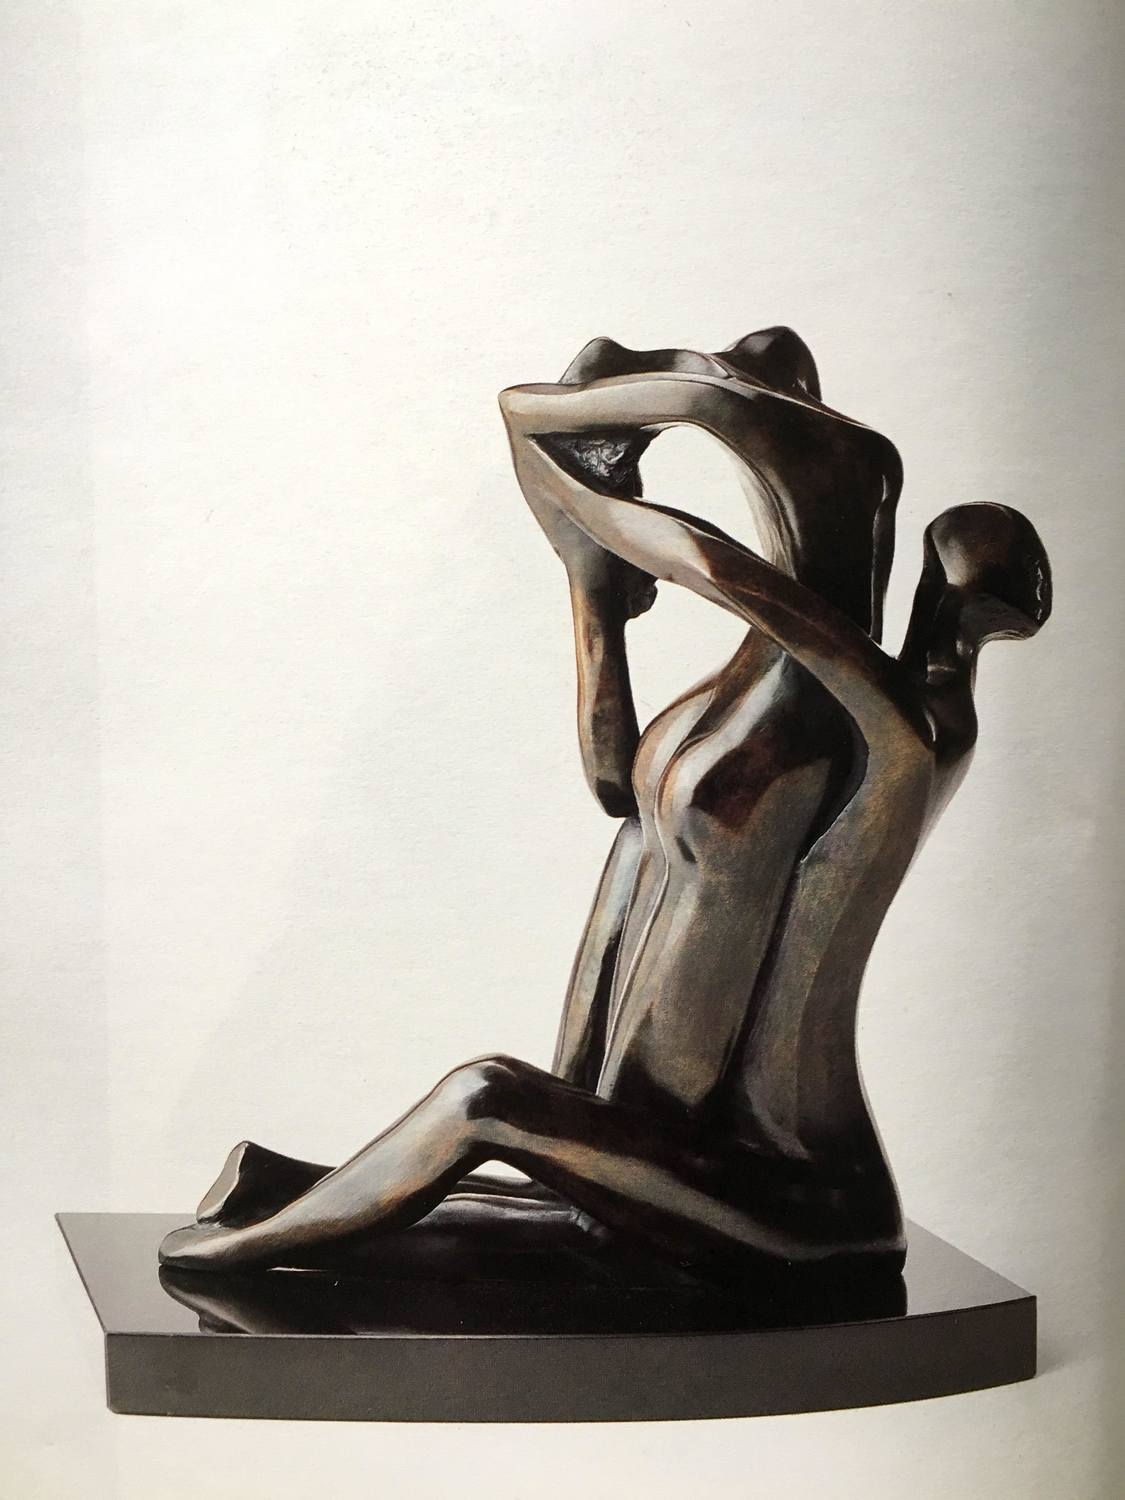 Large titre  abandon anne e de cre ation  1988 dimensions  34.5 x14 x28 cm matie re  bronze prix ttc  50 000